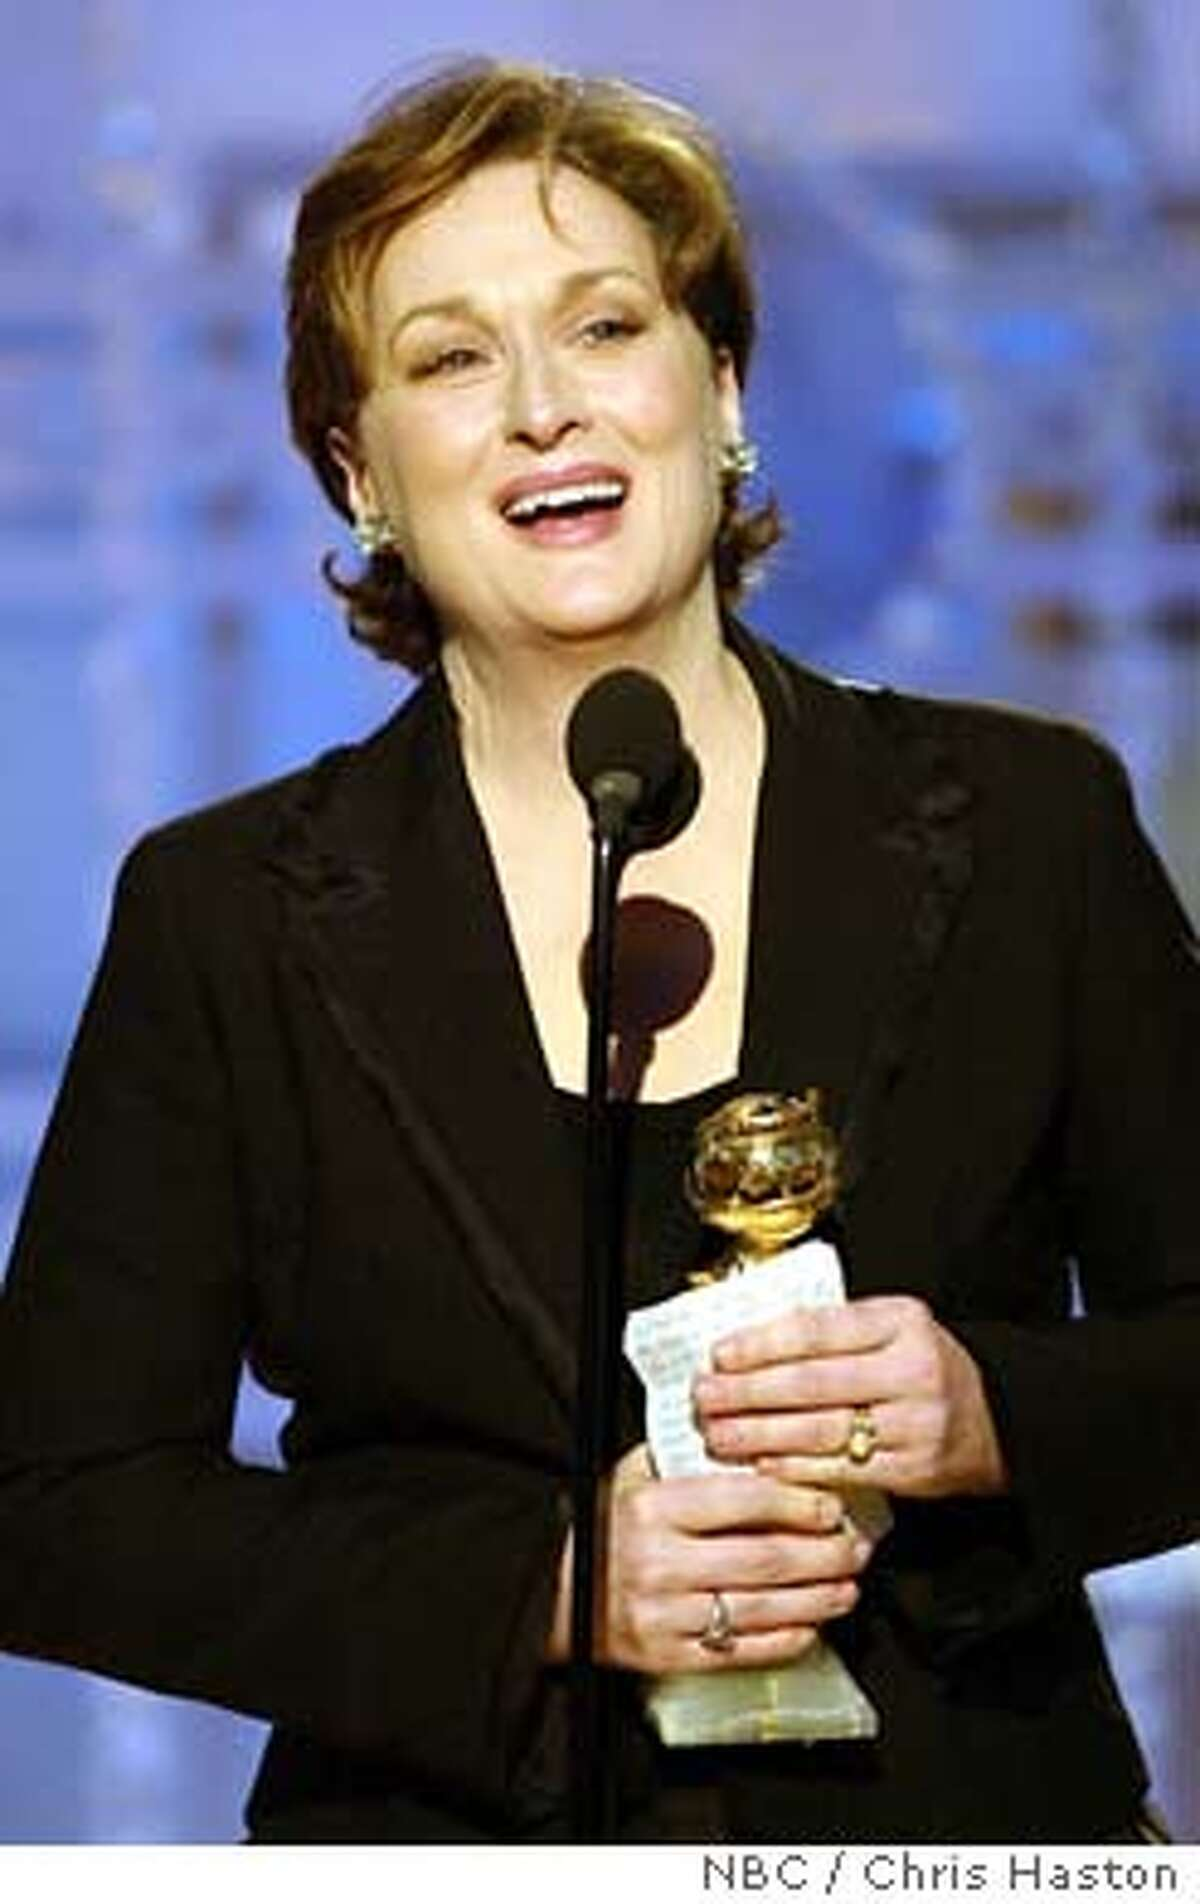 Actress Meryl Streep holds her award after winning best actress in a mini-series or television movie during the 61st annual Golden Globe Awards in Beverly Hills January 25, 2004. MANDATORY CREDIT FOR EDITORIAL USE ONLY NBC / Chris Haston/NBC/Handout ONLINE/INTERNET USE OF THIS IMAGE FROM THE GOLDEN GLOBES AWARDS SHOW EMBARGOED AND RESTRICTED FROM USAGE UNTIL THE CONCLUSION OF THE SHOW UNTIL APPROXIMATELY 2300 EDT/0400 GMT PER HOLLYWOOD FOREIGN PRESS ASSOCIATION